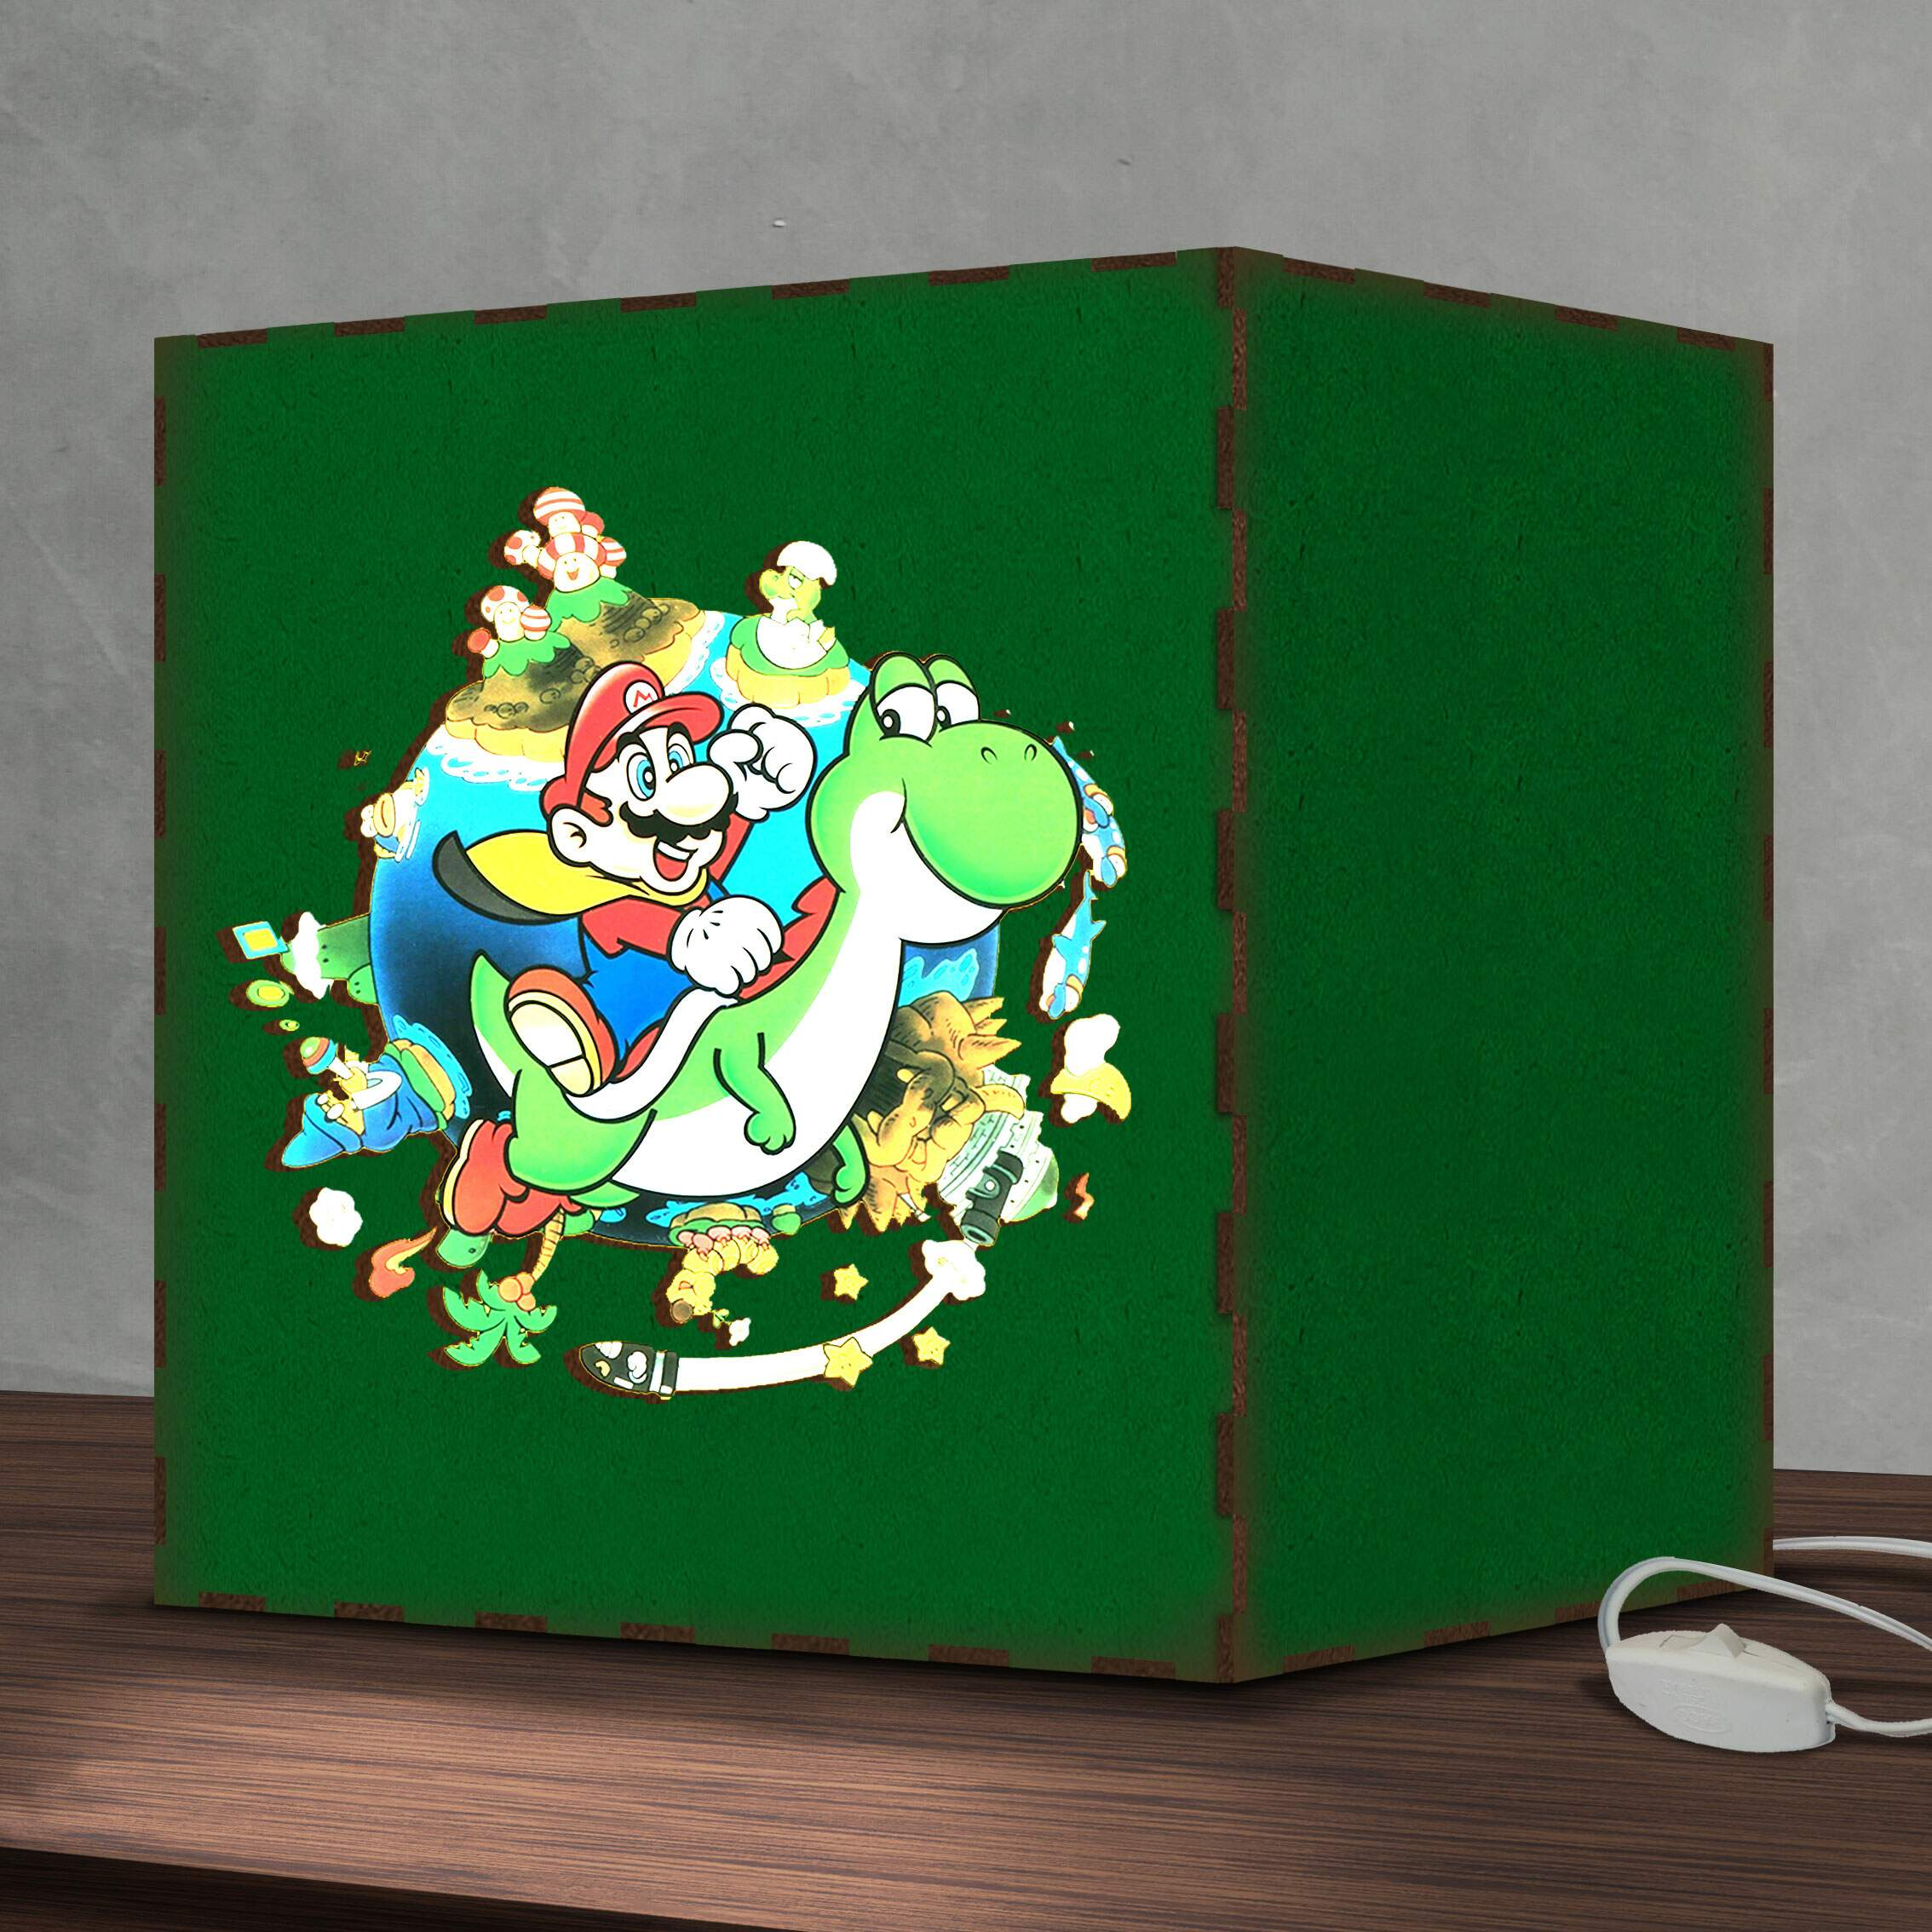 Luminária Lightbox Led Super Mario World